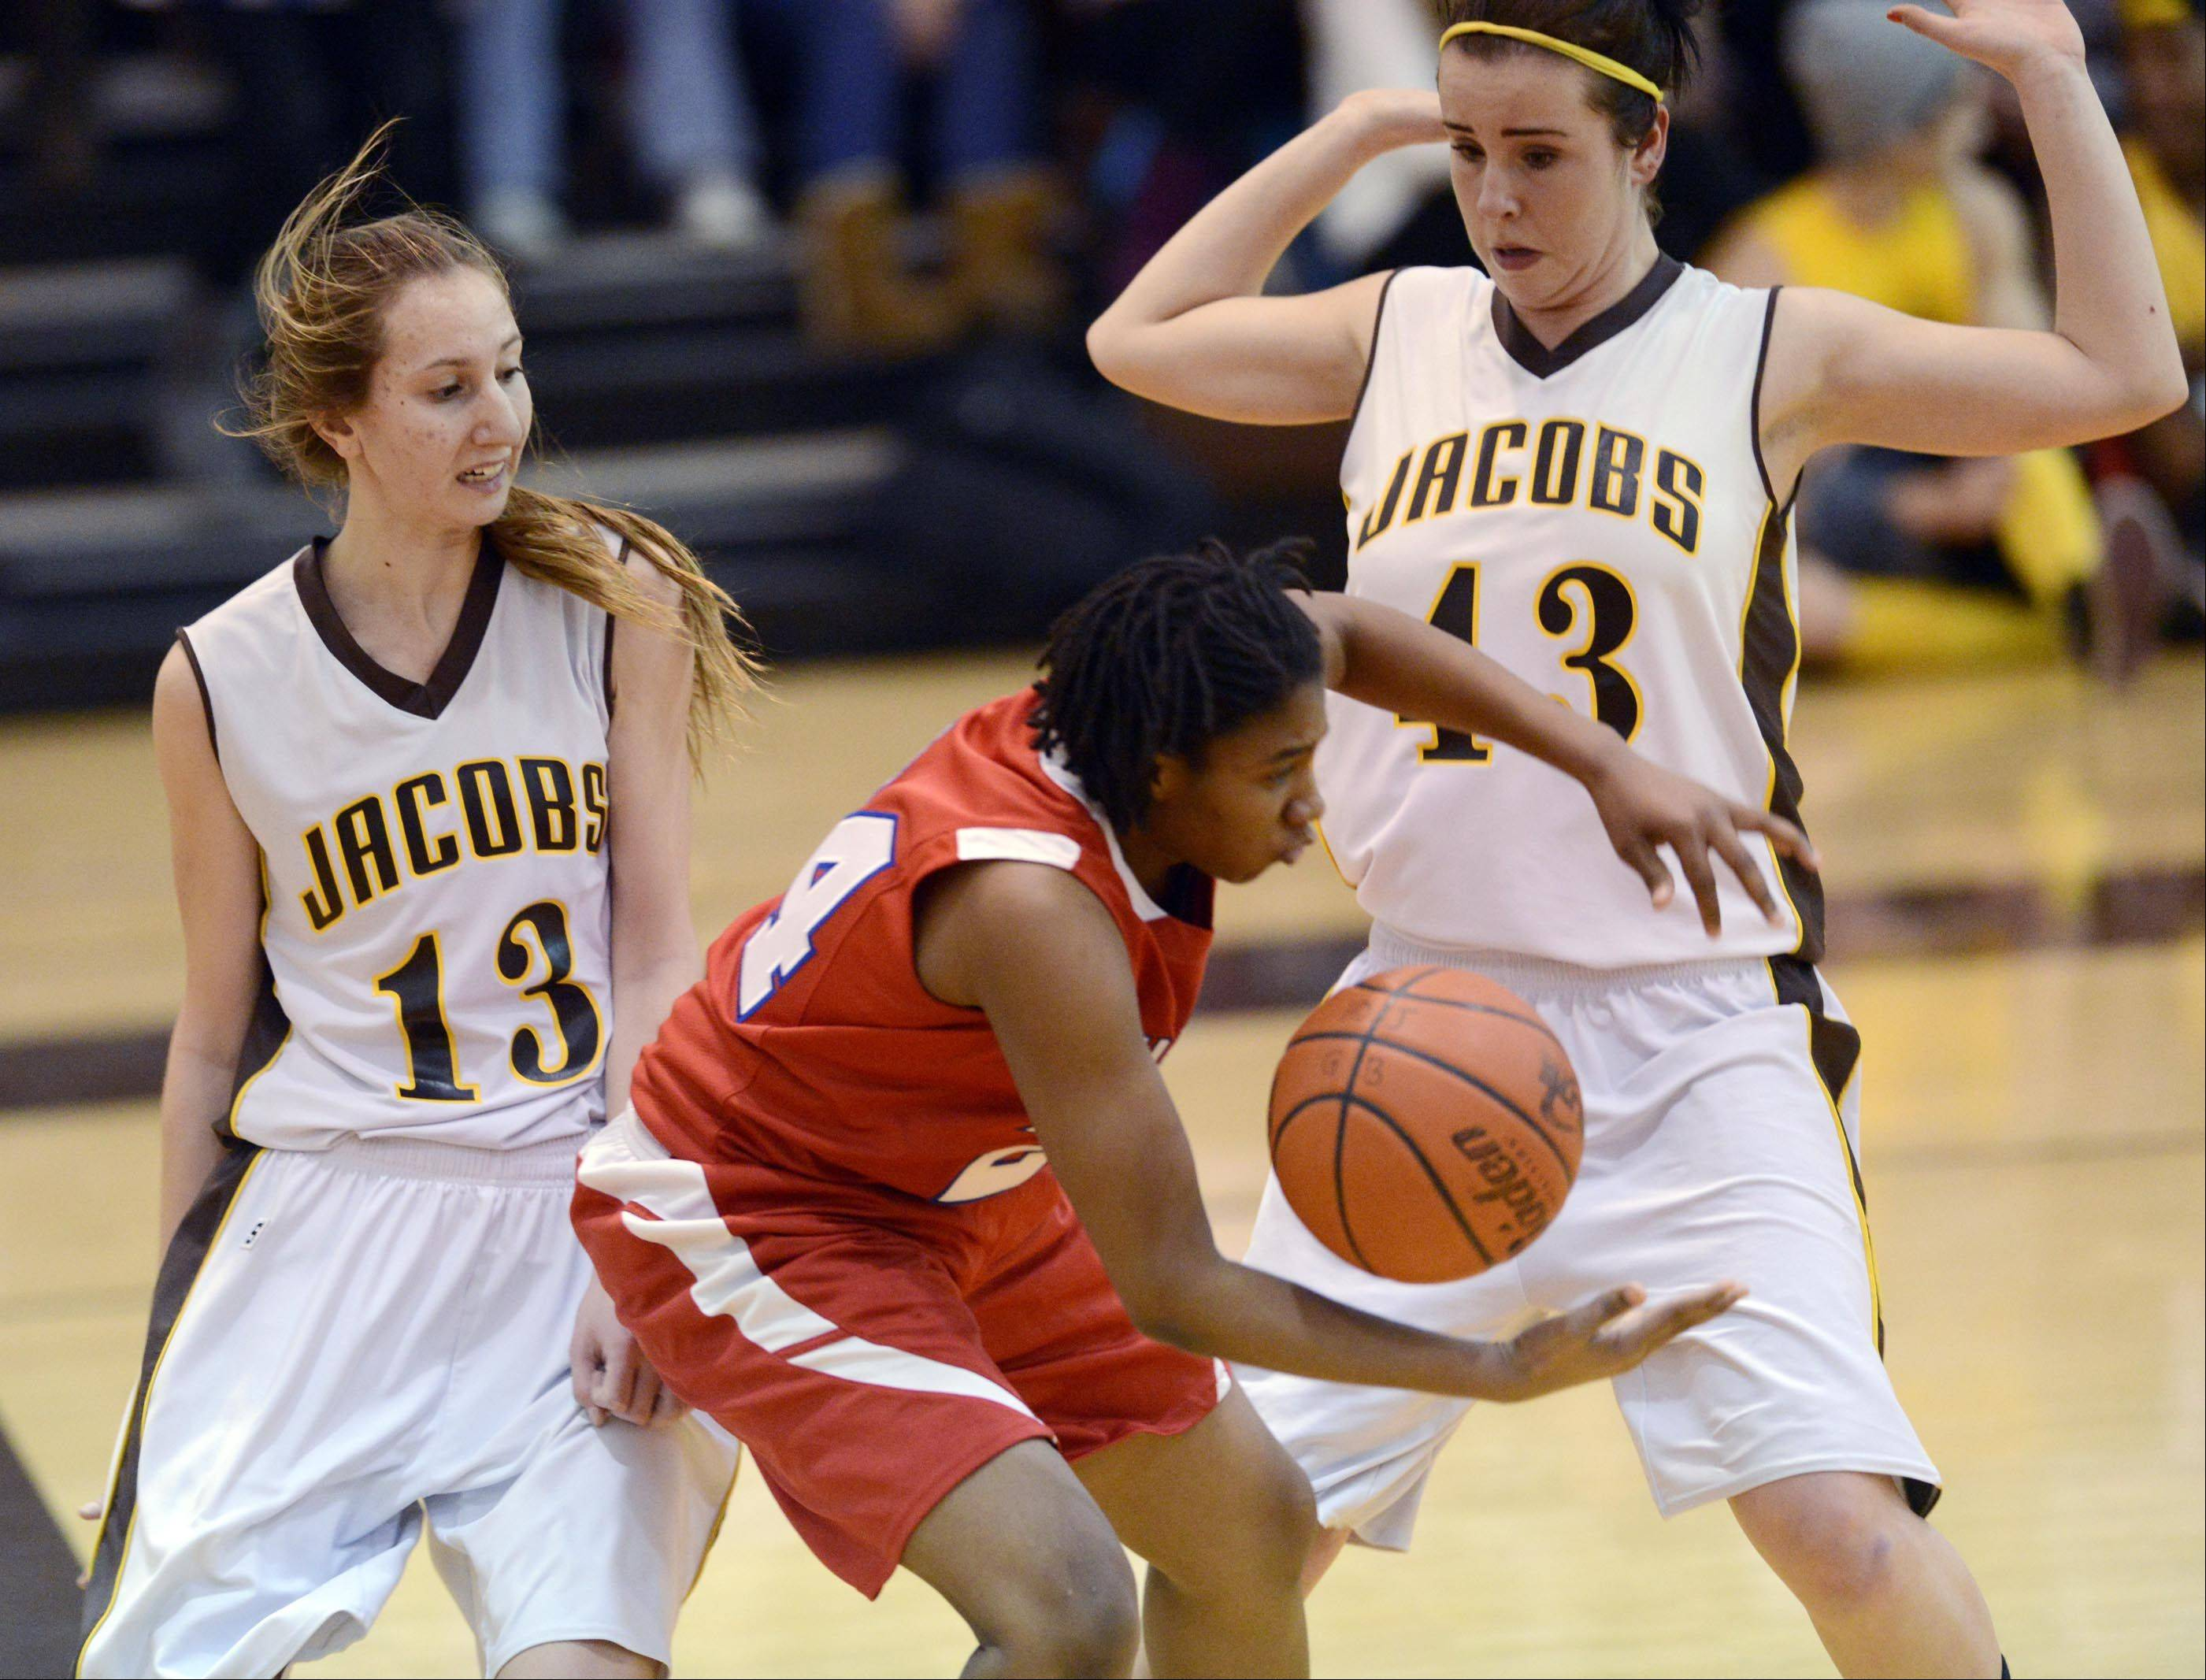 Dundee-Crown's Jereneka Baker loses control of the ball under pressure from Jacobs' Victoria Tamburrino and Jackie Bartolai, right, Tuesday in Algonquin.